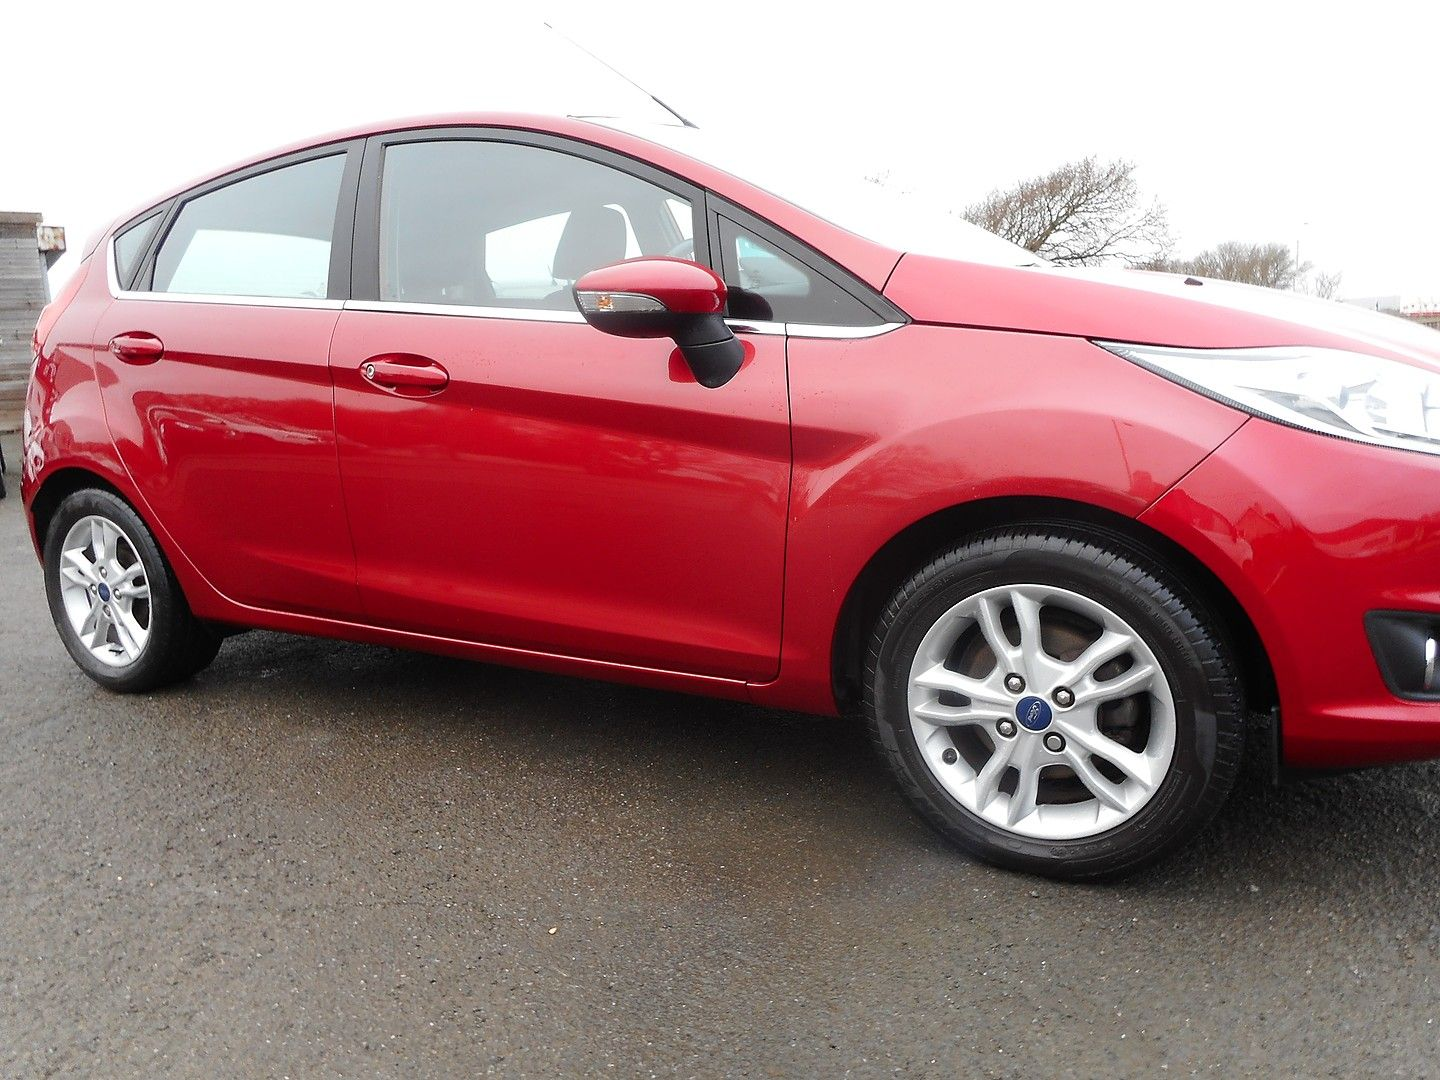 FORD Fiesta Zetec 1.0 80PS Start/Stop (2015) - Picture 2